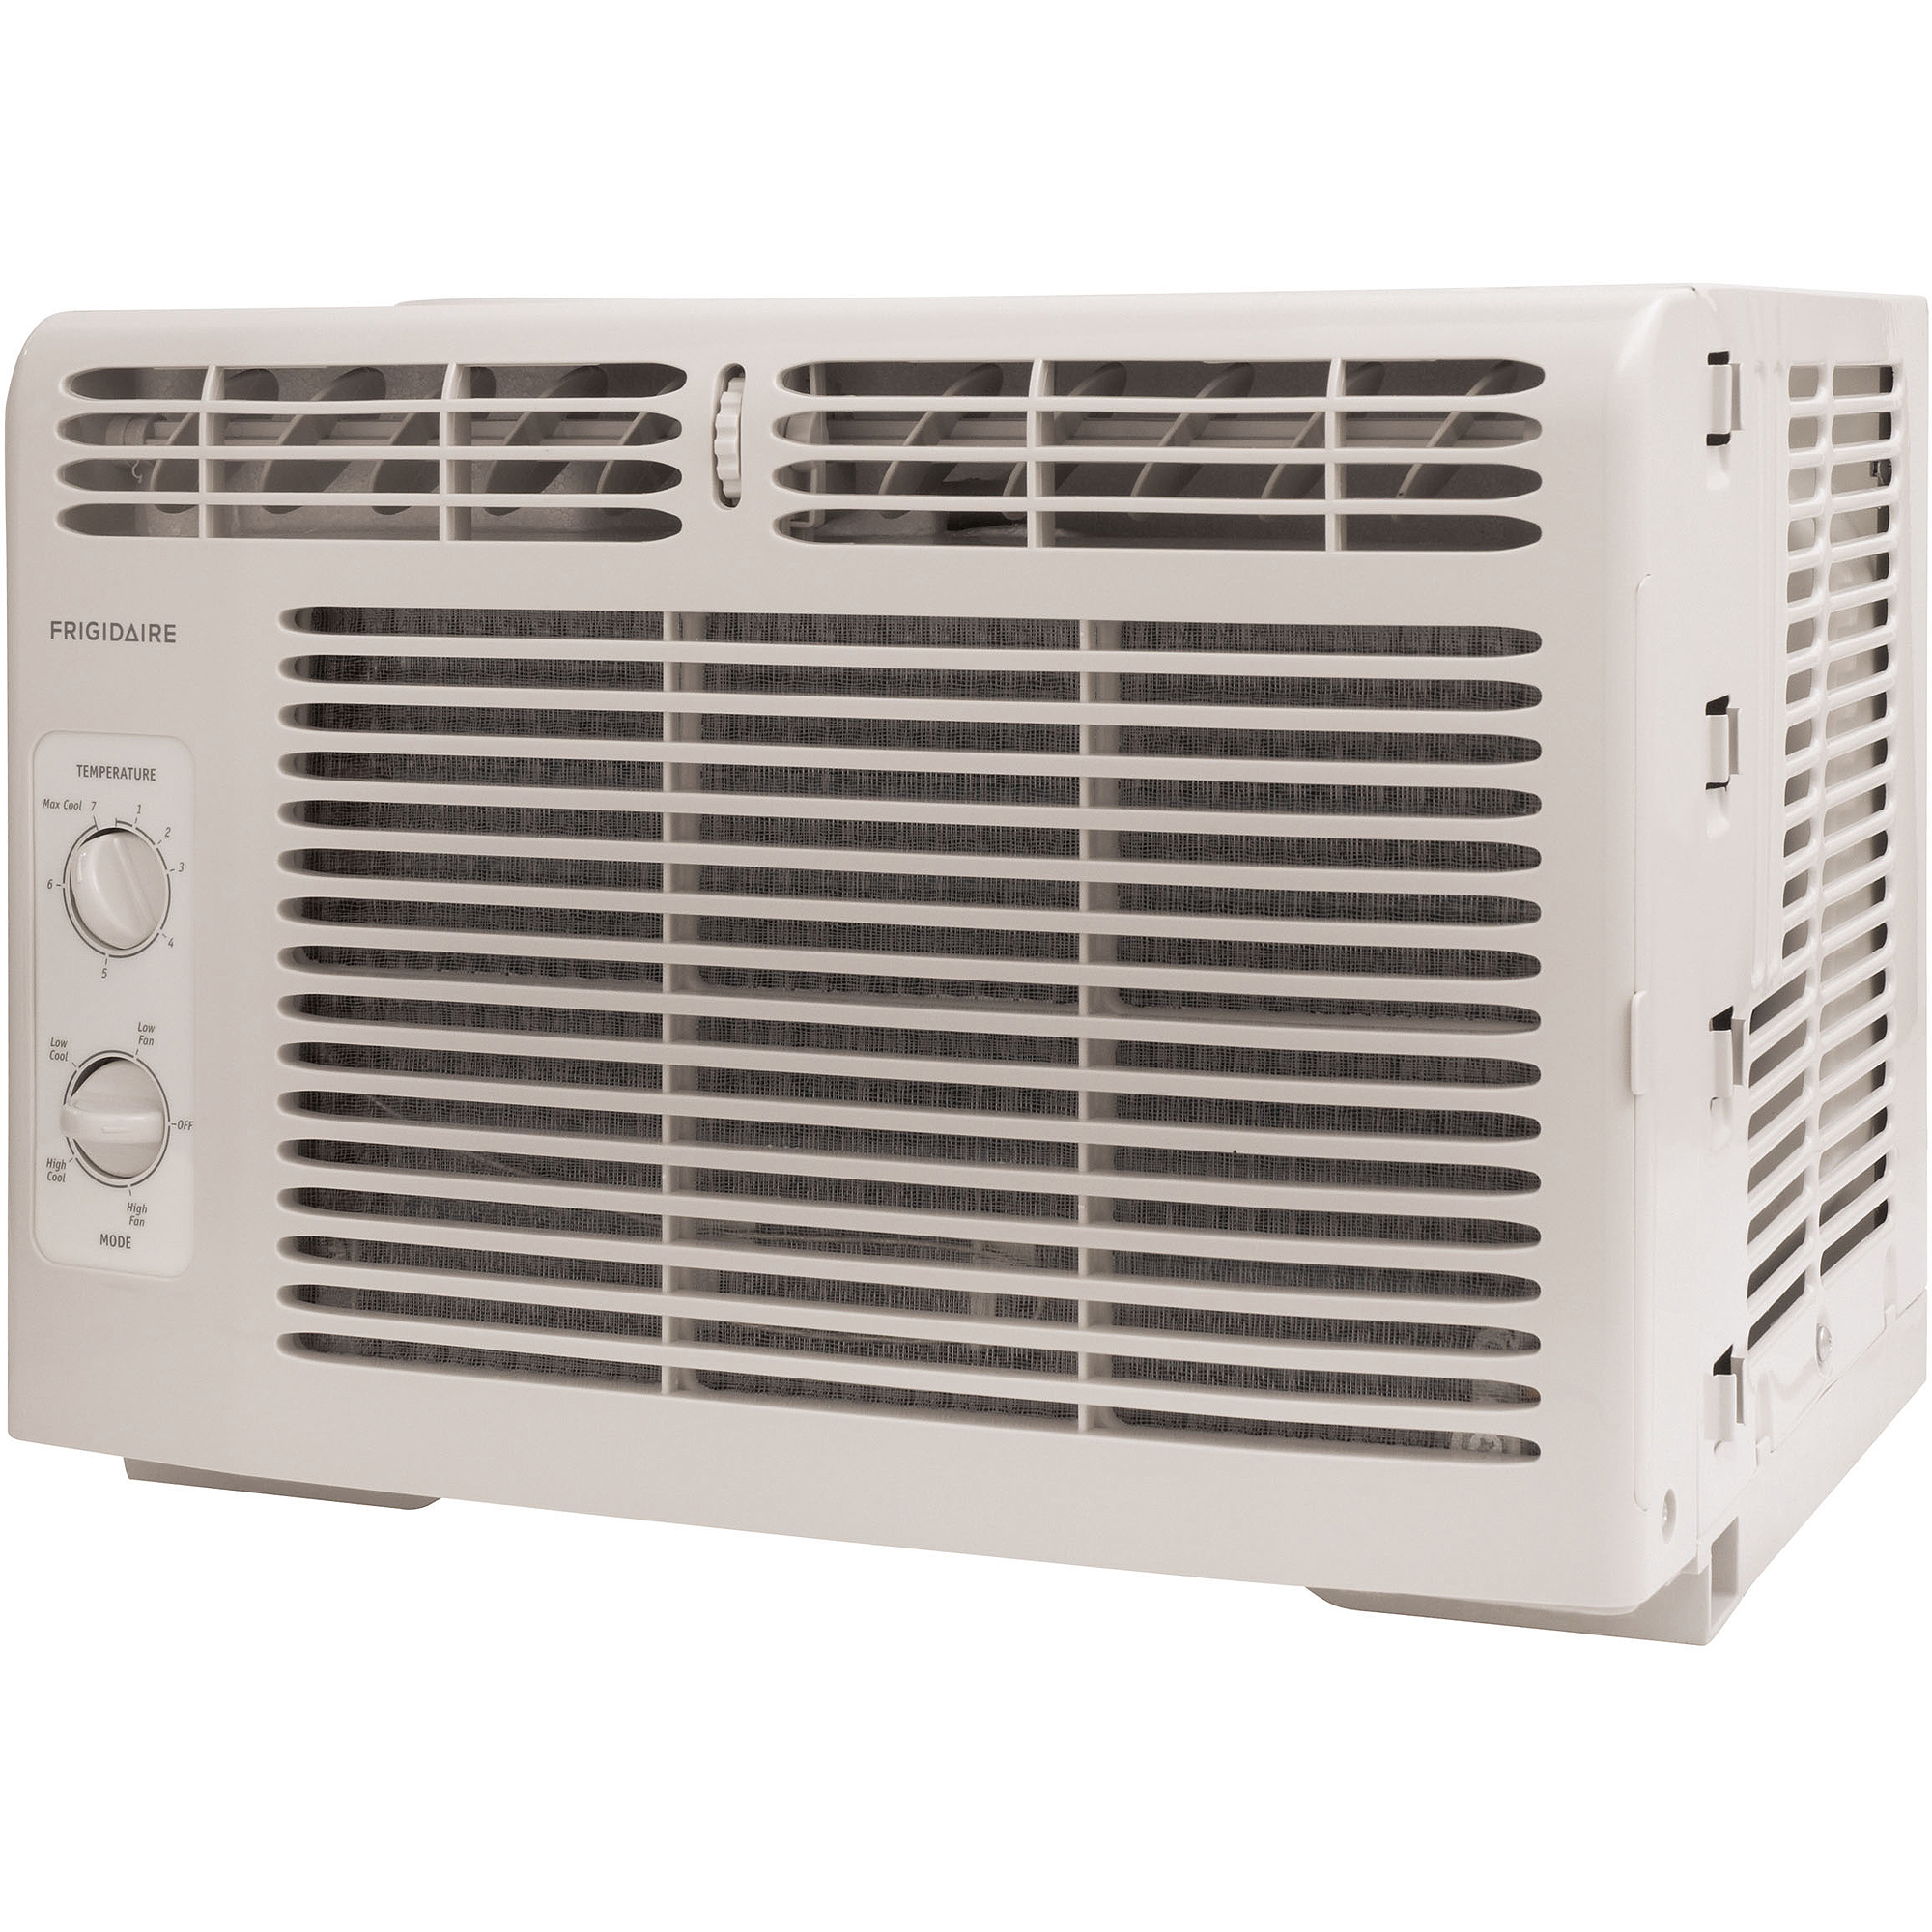 Frigidaire FRA082AT7 8,000-BTU 115V Window-Mounted Compact Air Conditioner with Mechanical Controls